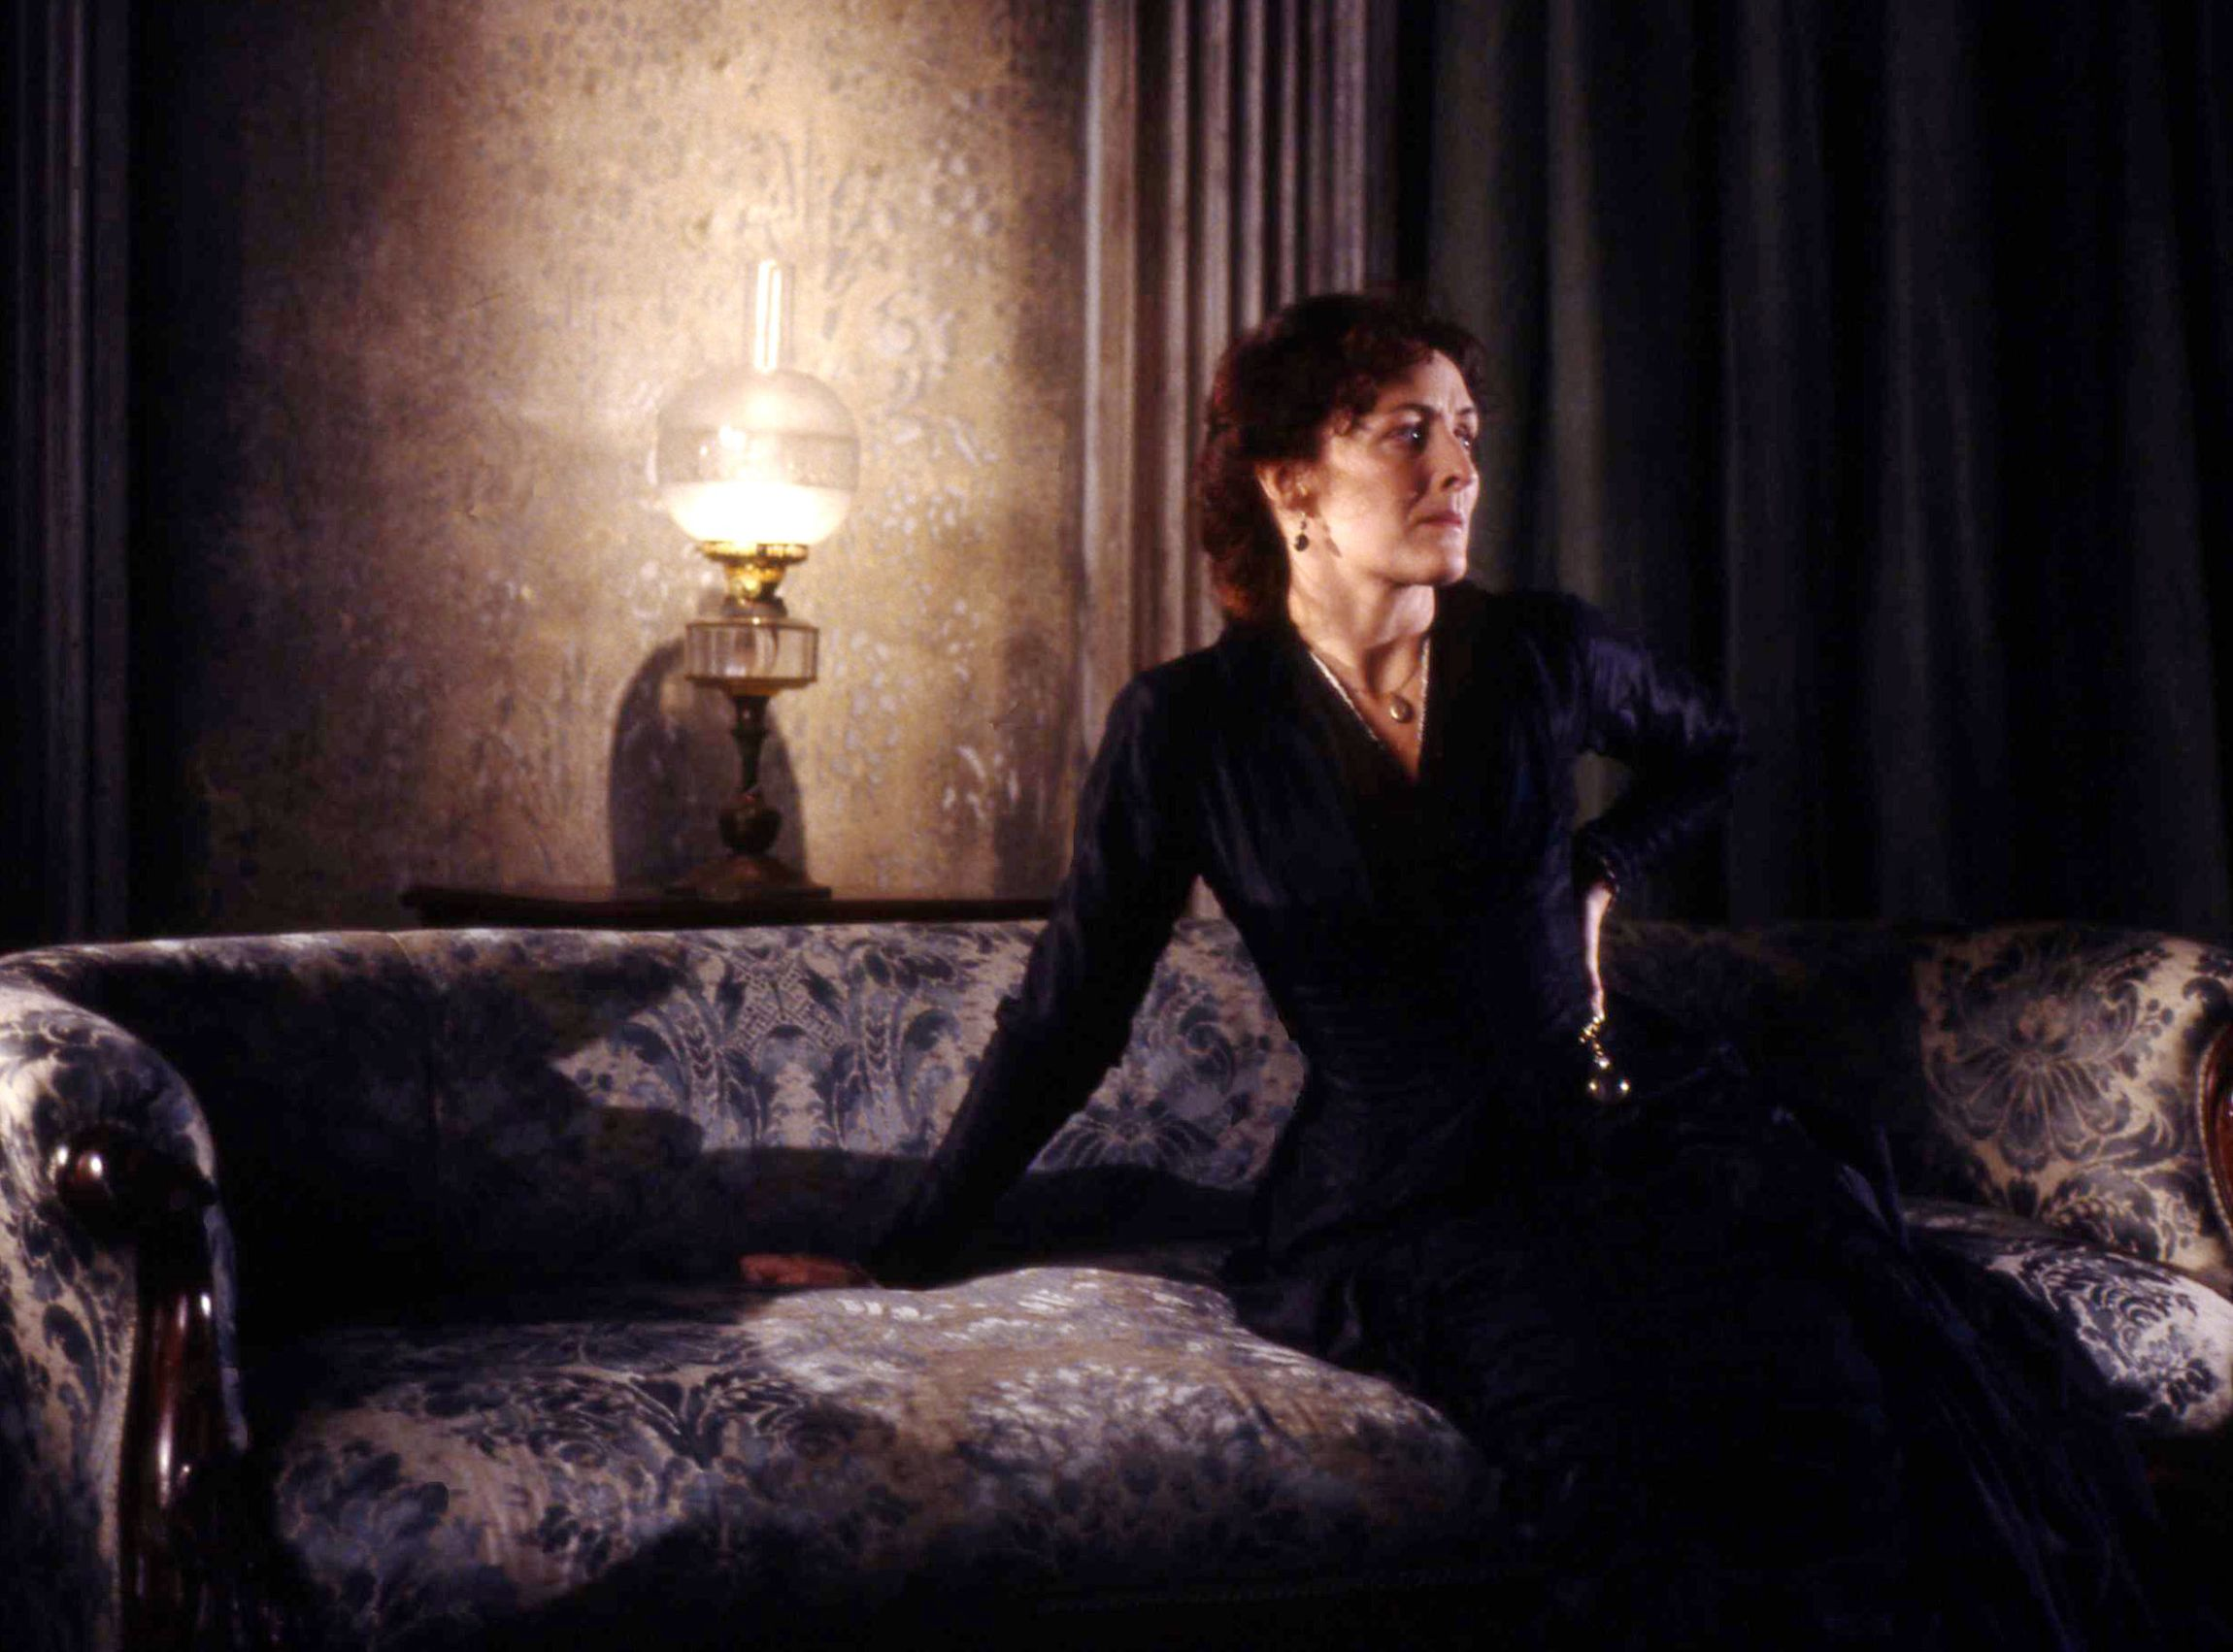 Hedda Gabler production image